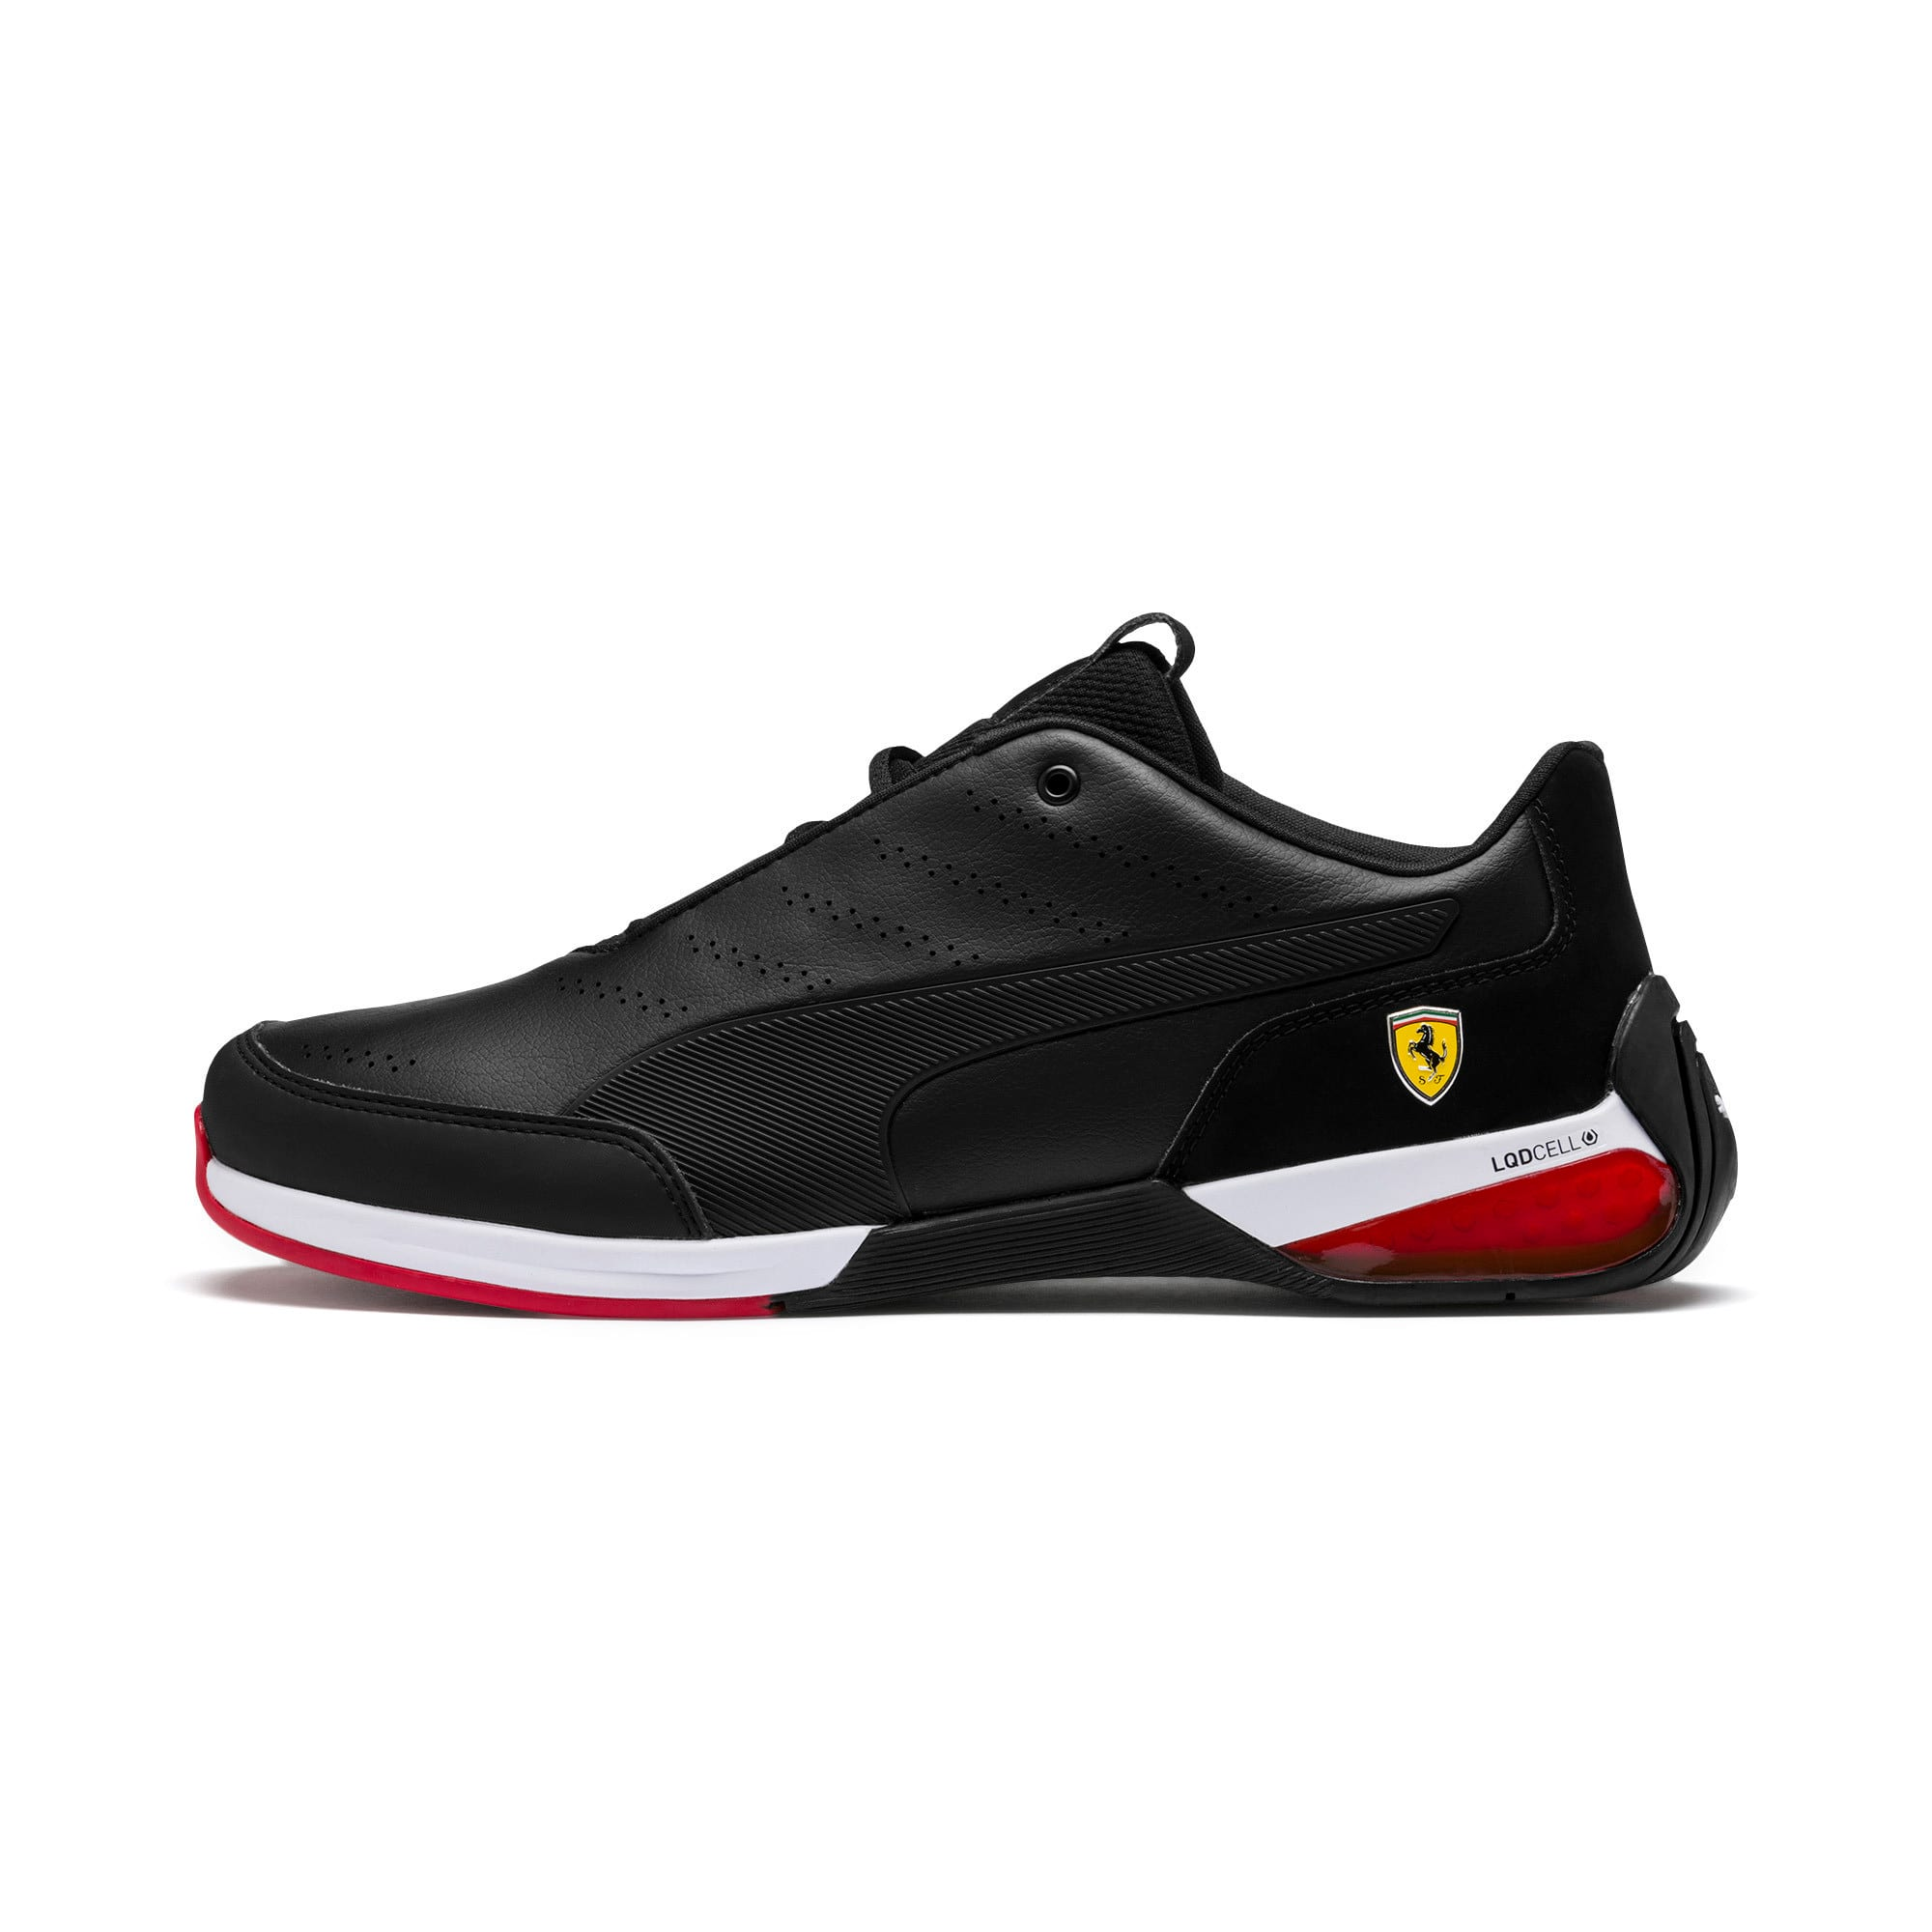 Thumbnail 1 of Ferrari Kart Cat X Trainers, Puma Black-Puma Black, medium